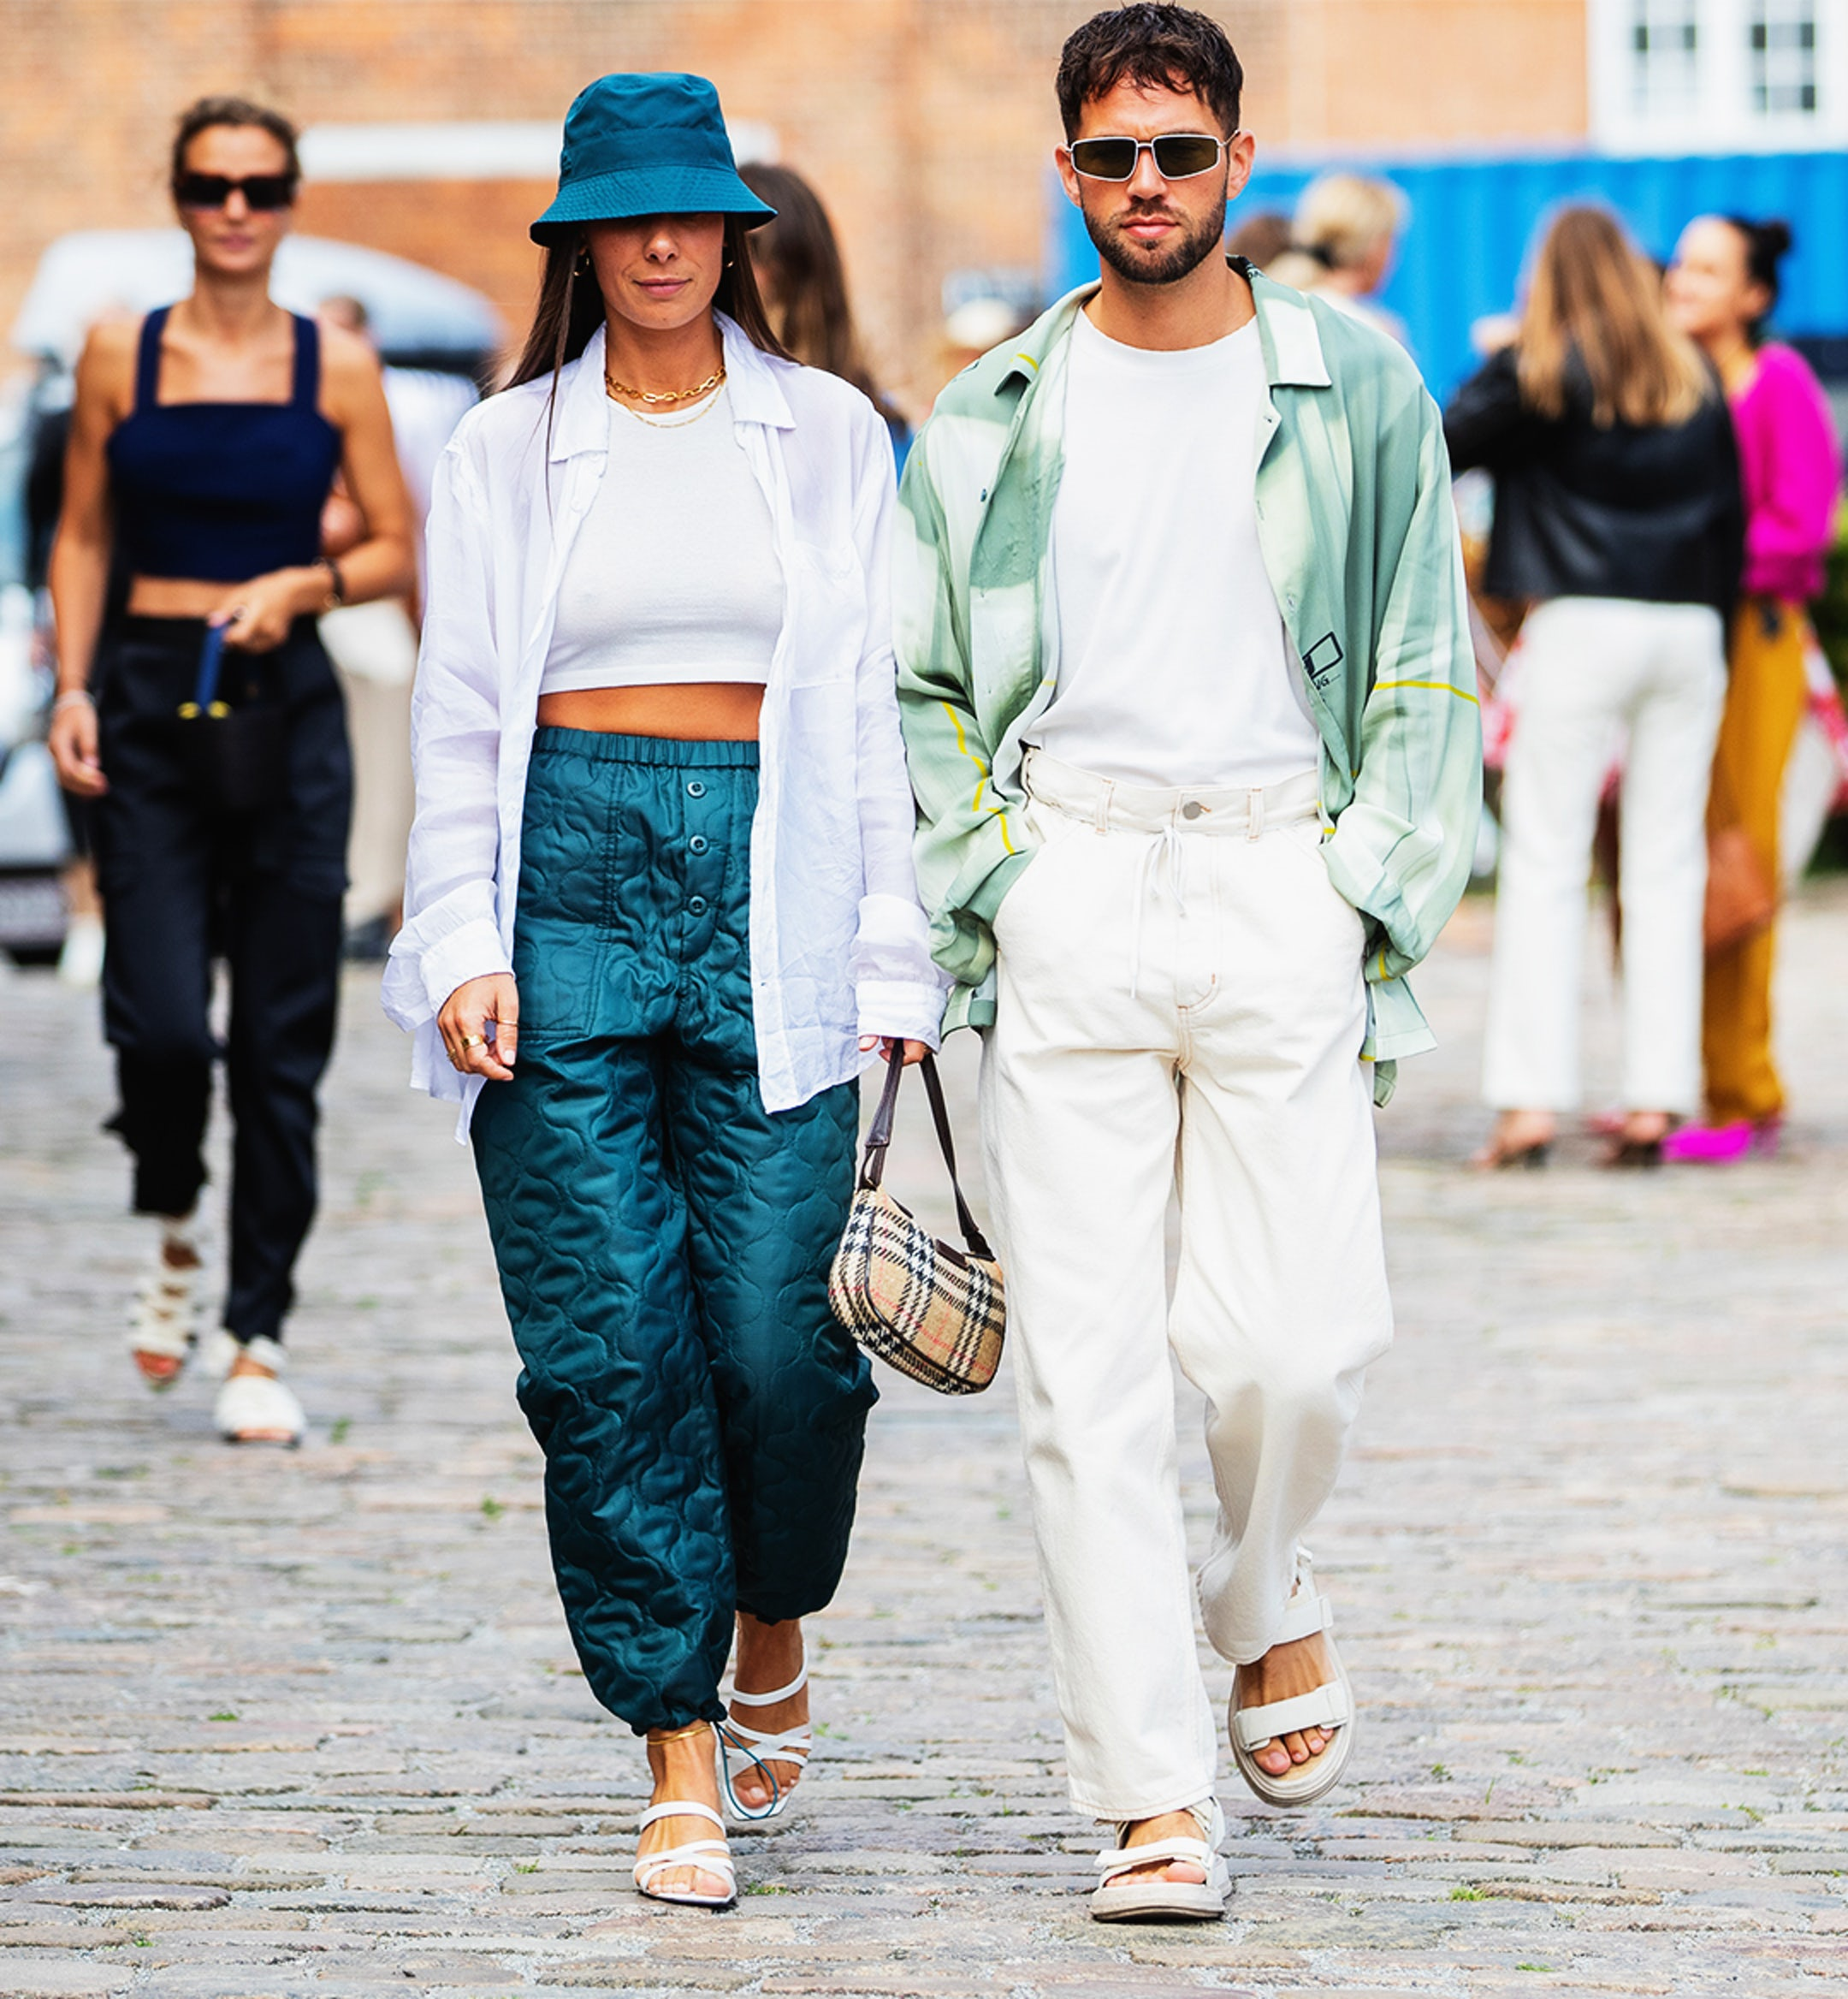 copenhagen fashion week duos hero